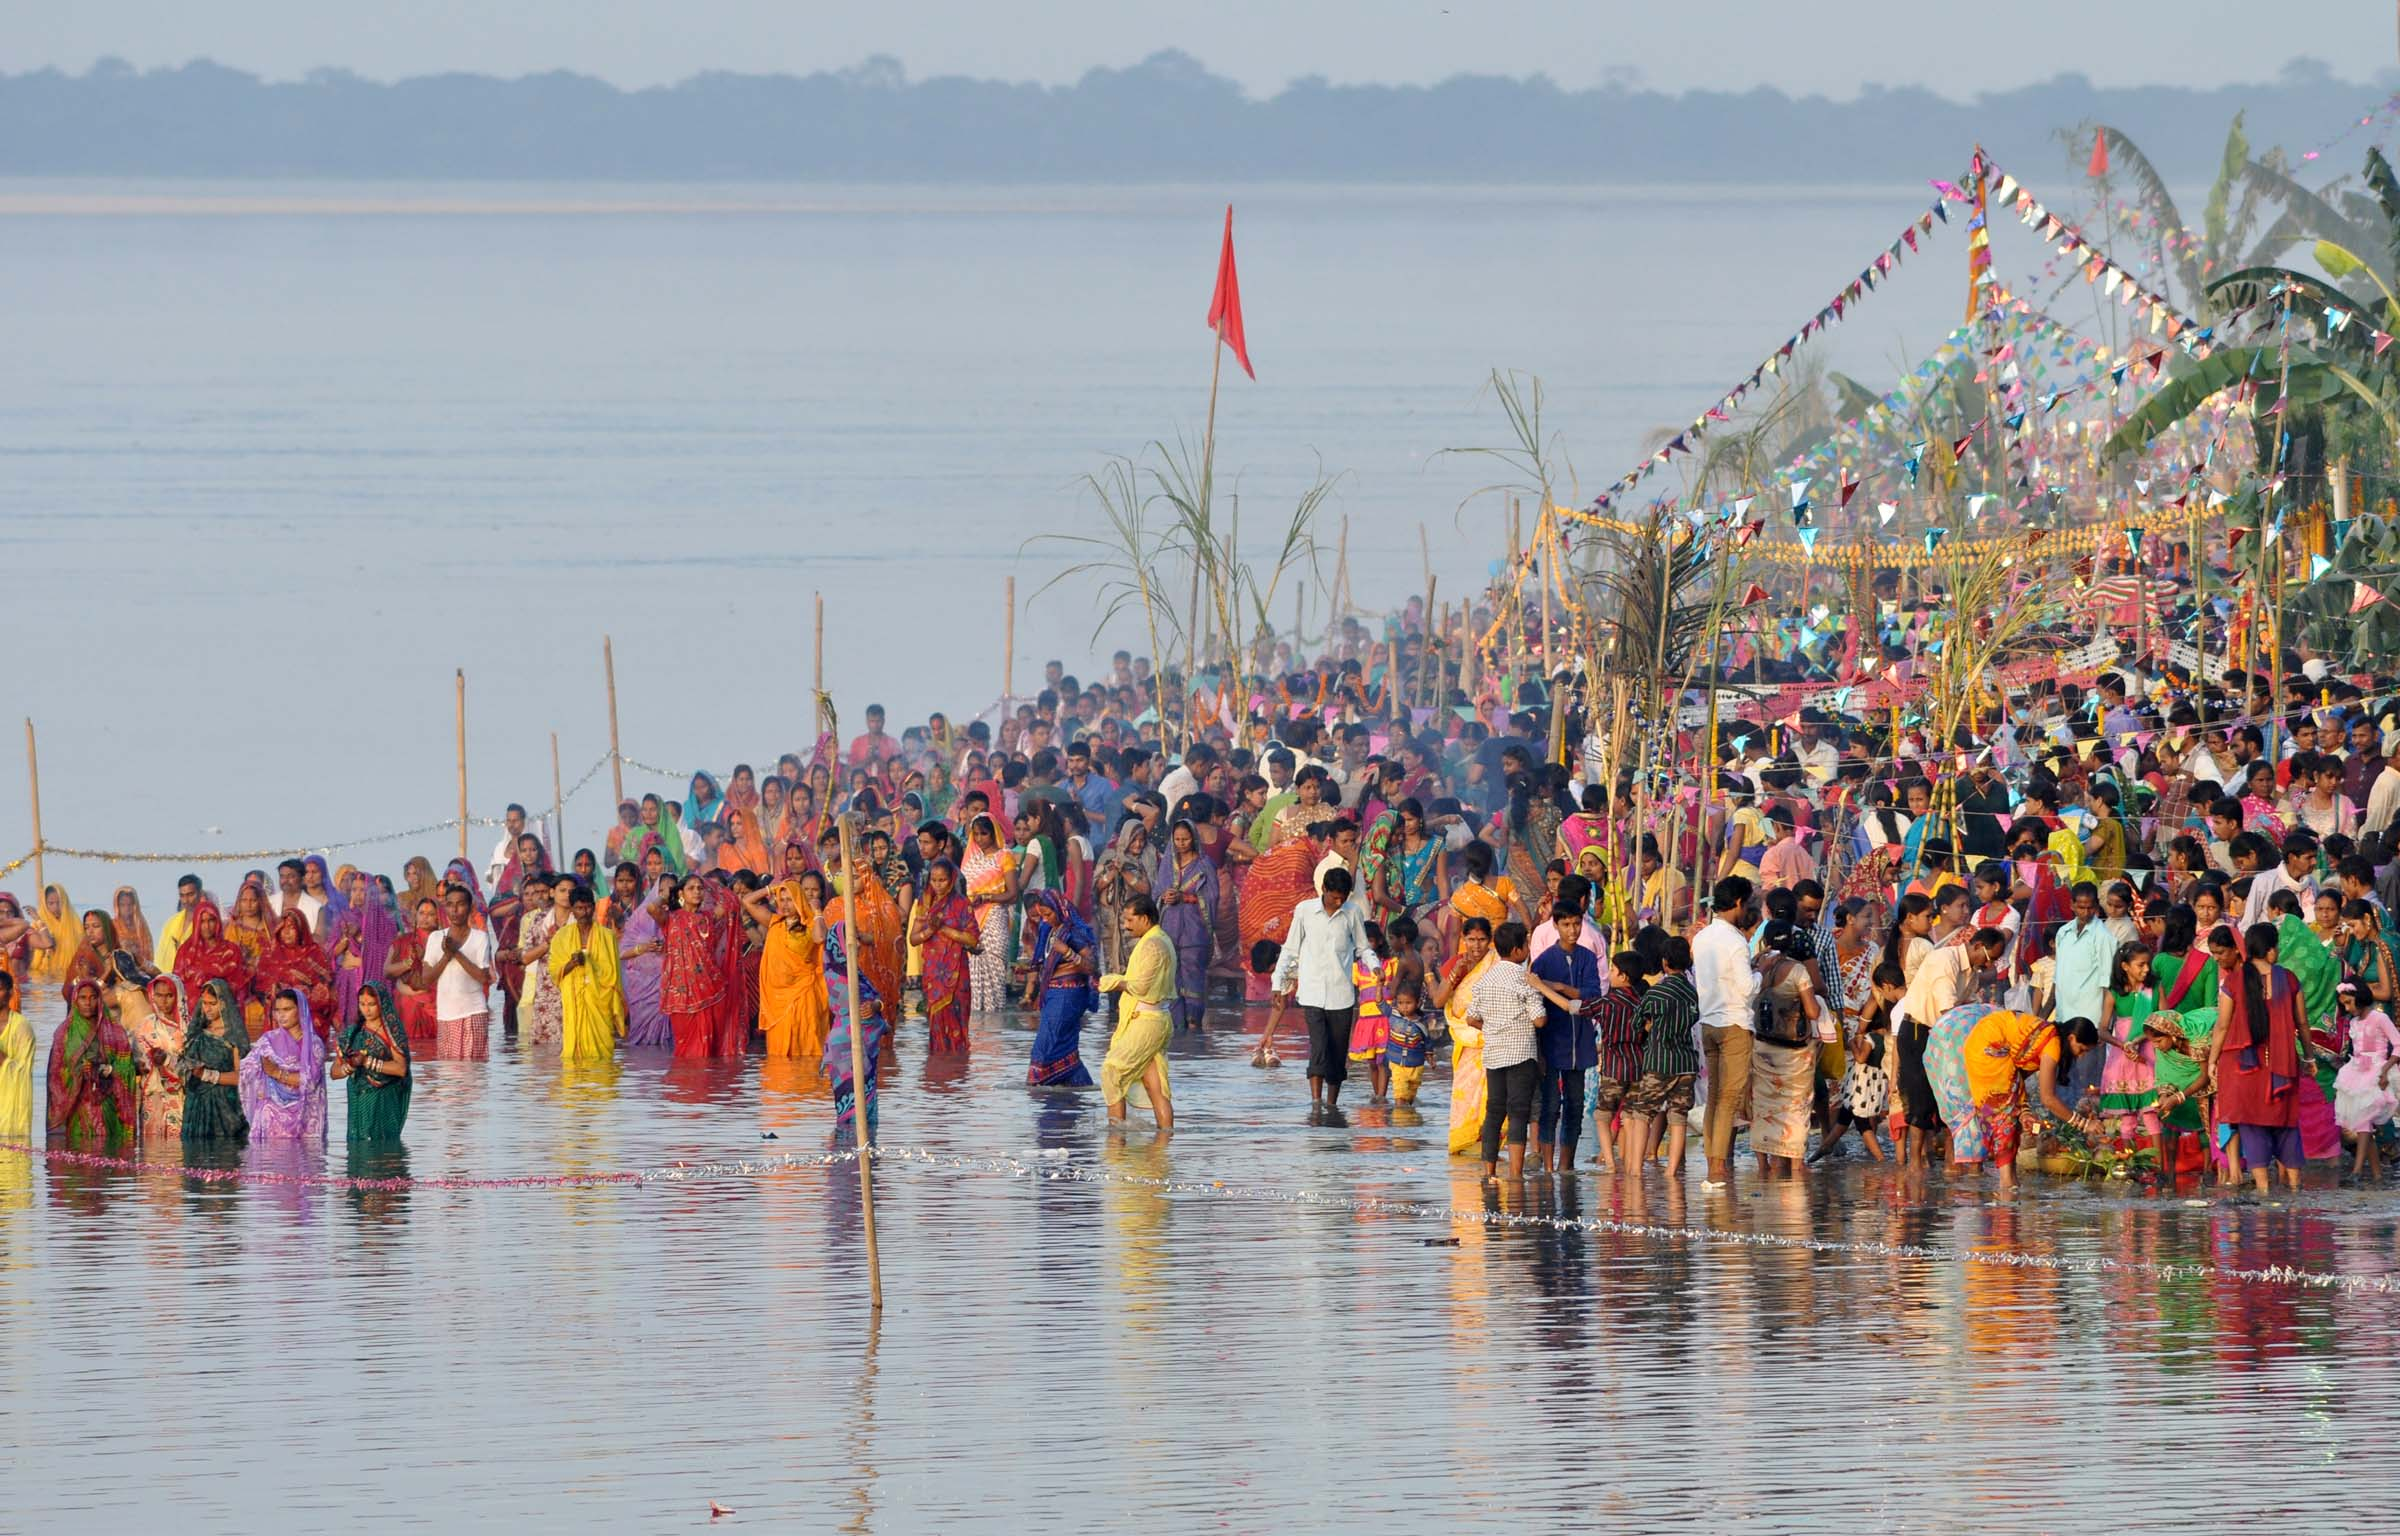 Hindu devotees performed rituals during Chhath Puja while standing in the river Brahmaputra in Guwahati on Wednesday October 29, 2014 . Devotees pay obeisance to both the rising and the setting sun during the Chhath festival. Photo- Reba Kumar Borah.